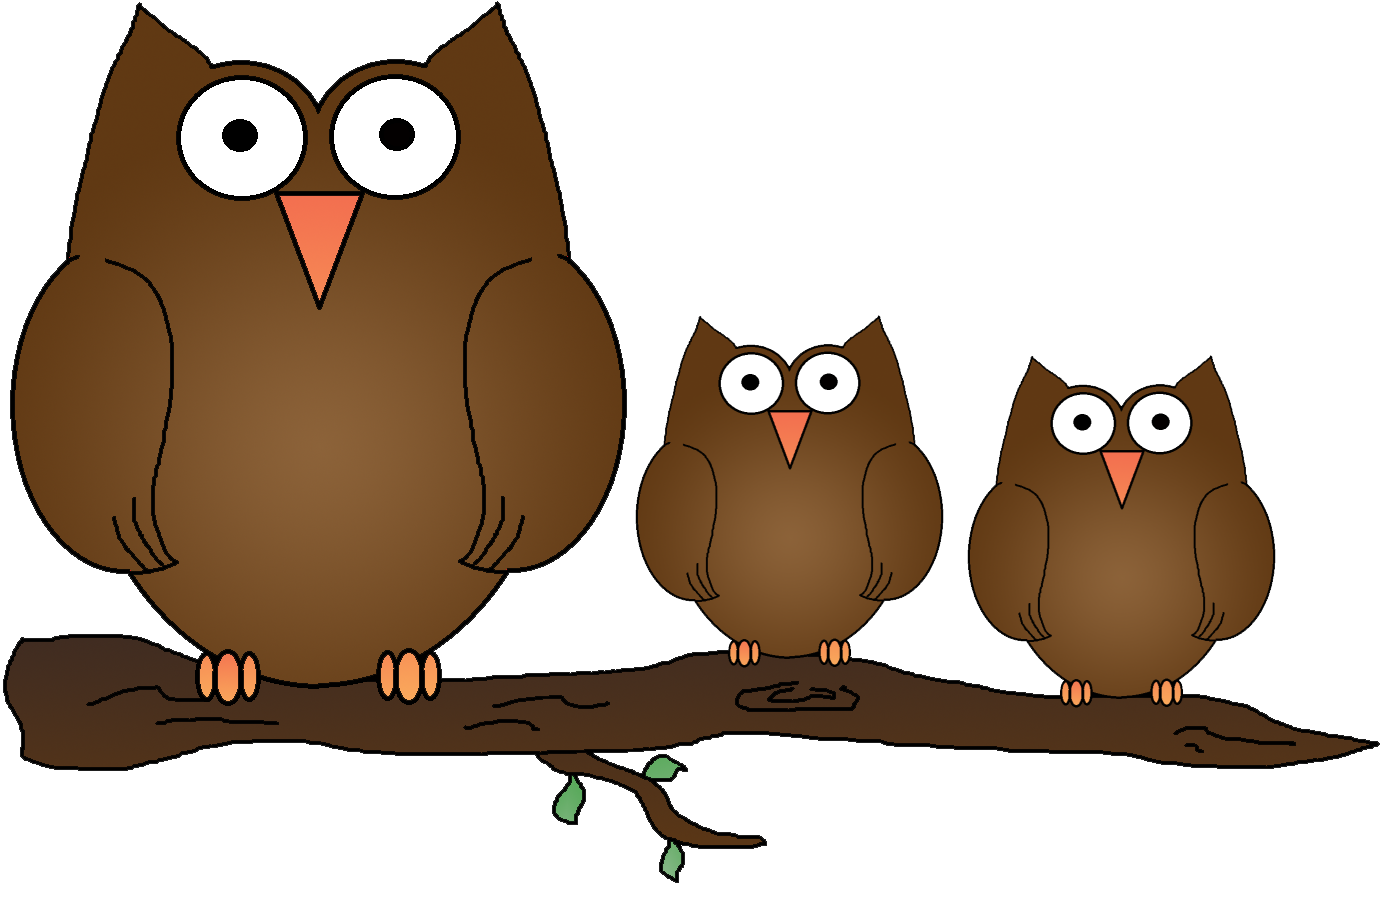 Owlet clipart #3, Download drawings